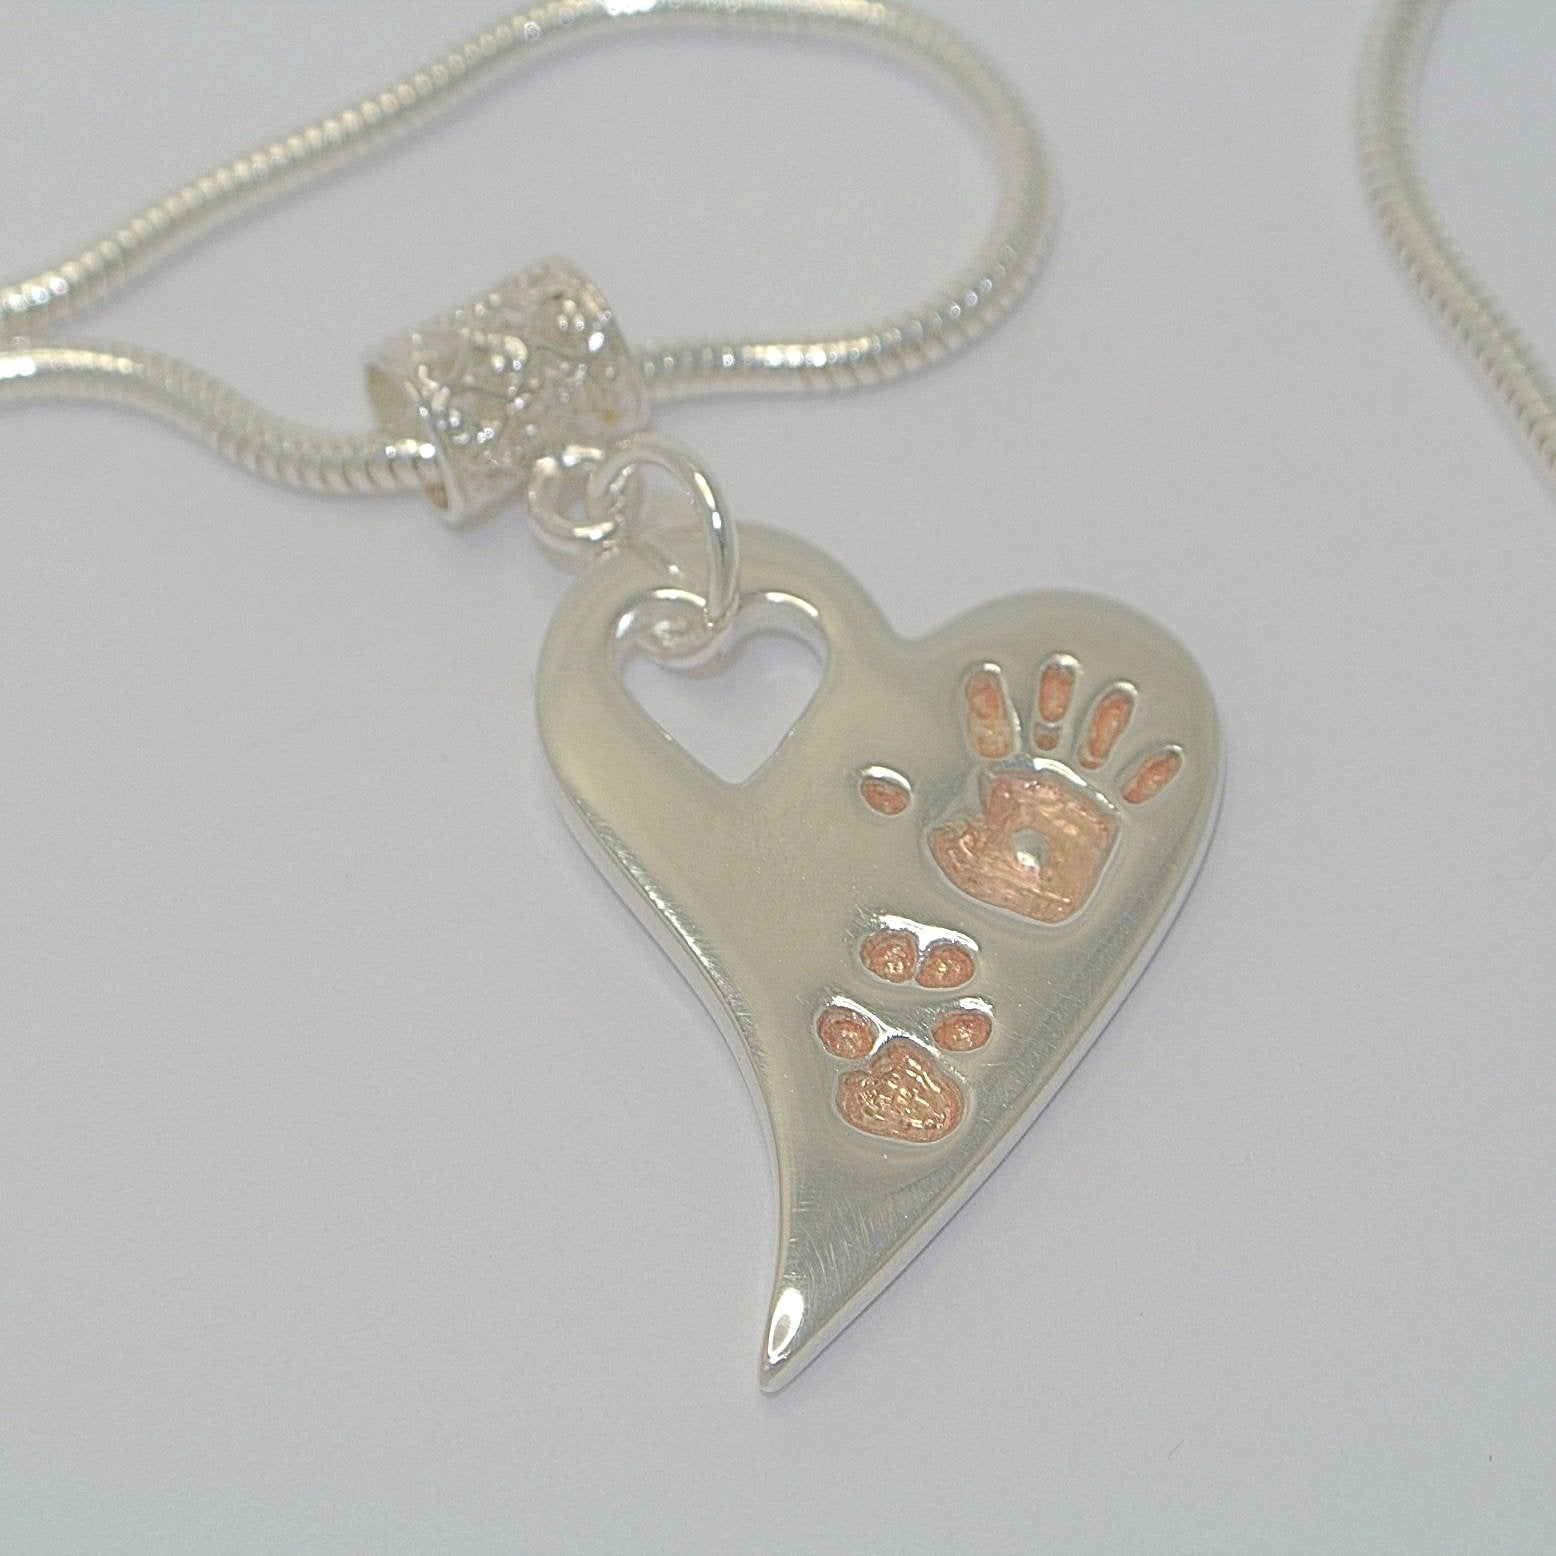 Pawprint Wavy Heart Necklace with 18ct Rose Gold